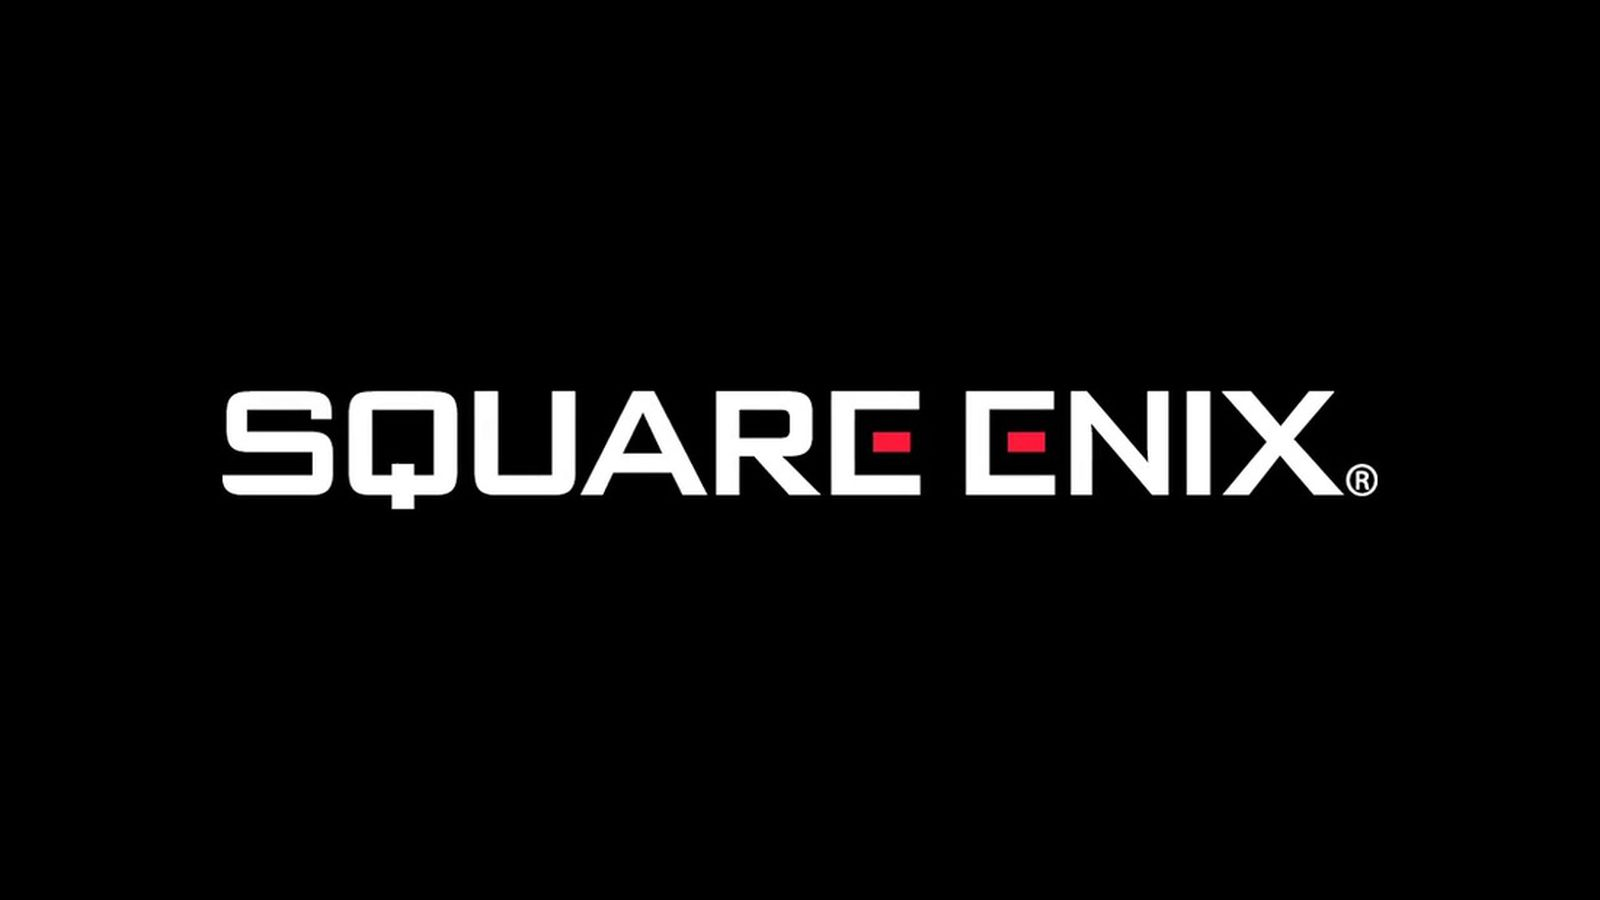 square enix plans to announce major titles from the end of E3 Convention Logo Expo Marker